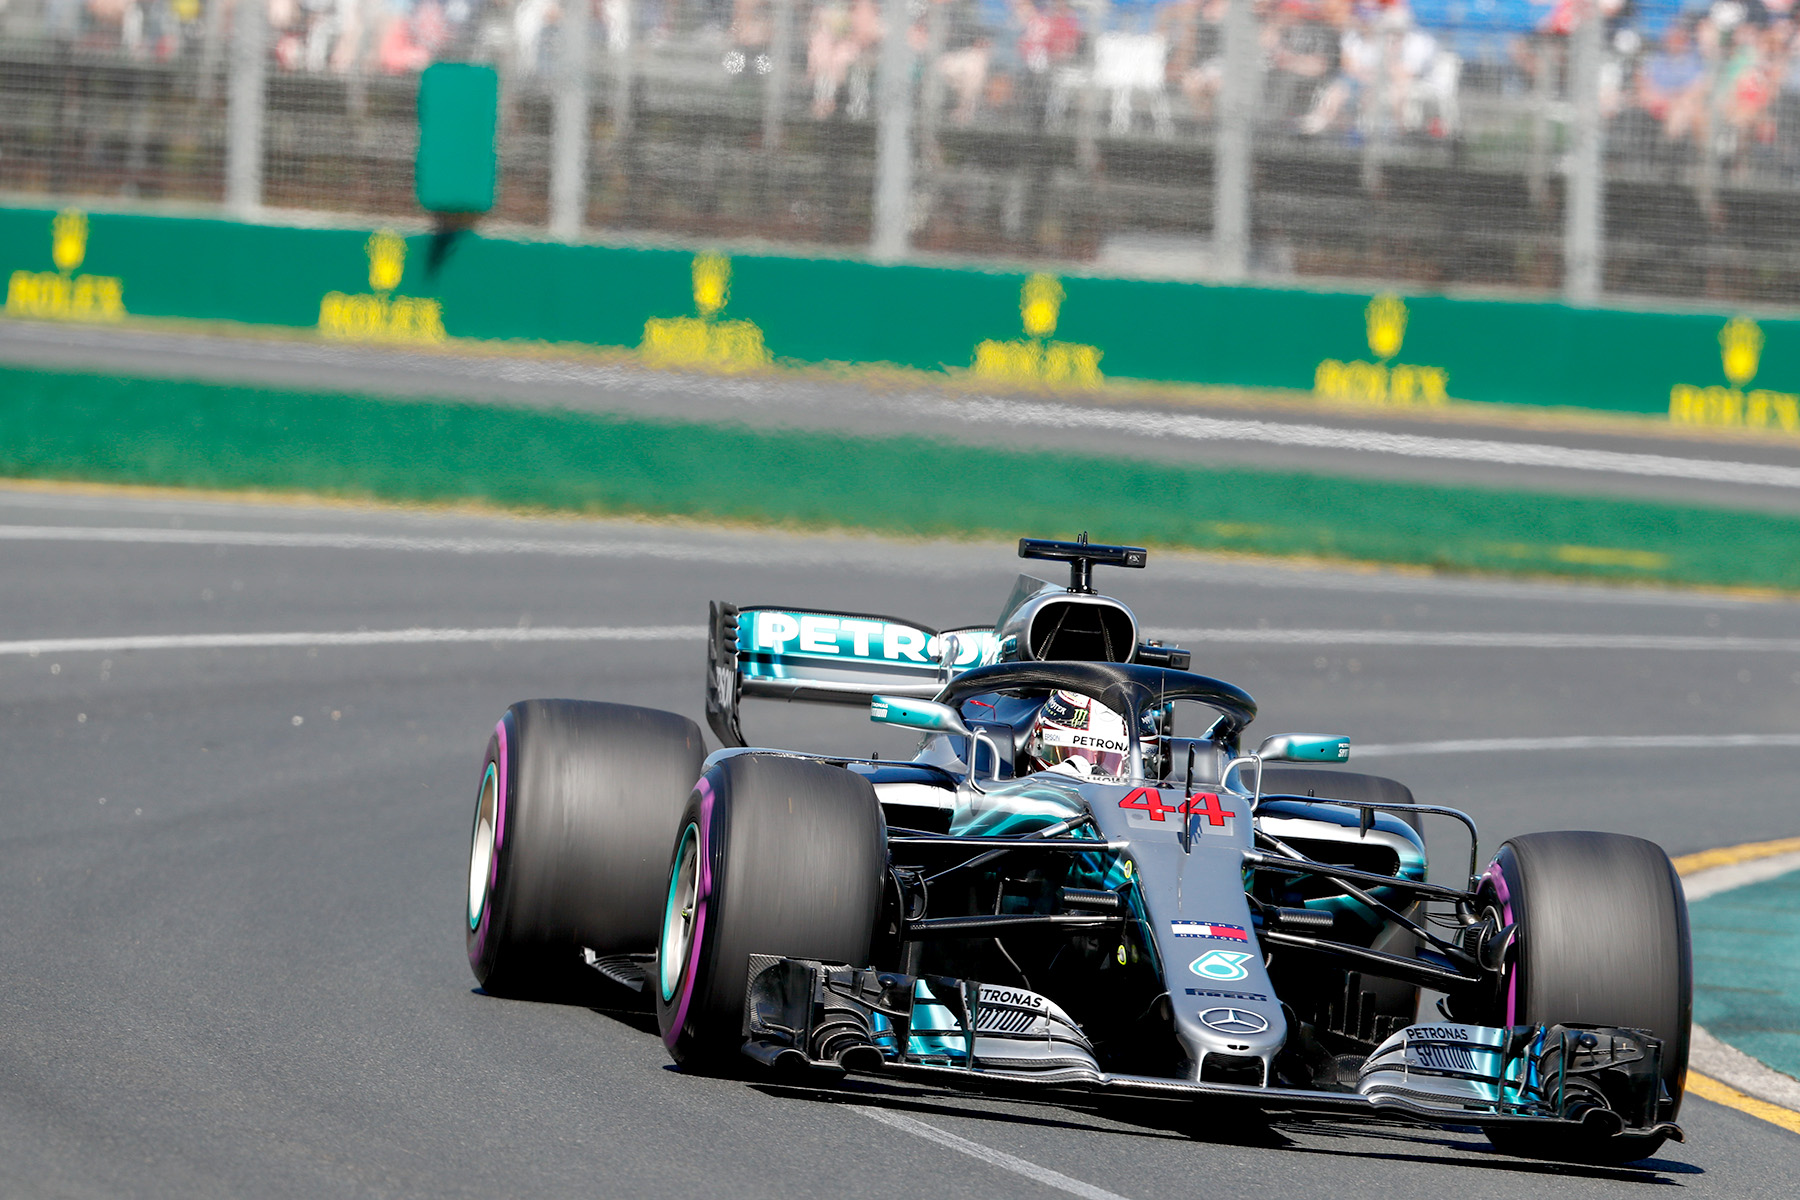 Lewis Hamilton on track on Friday at the Australian Grand Prix.